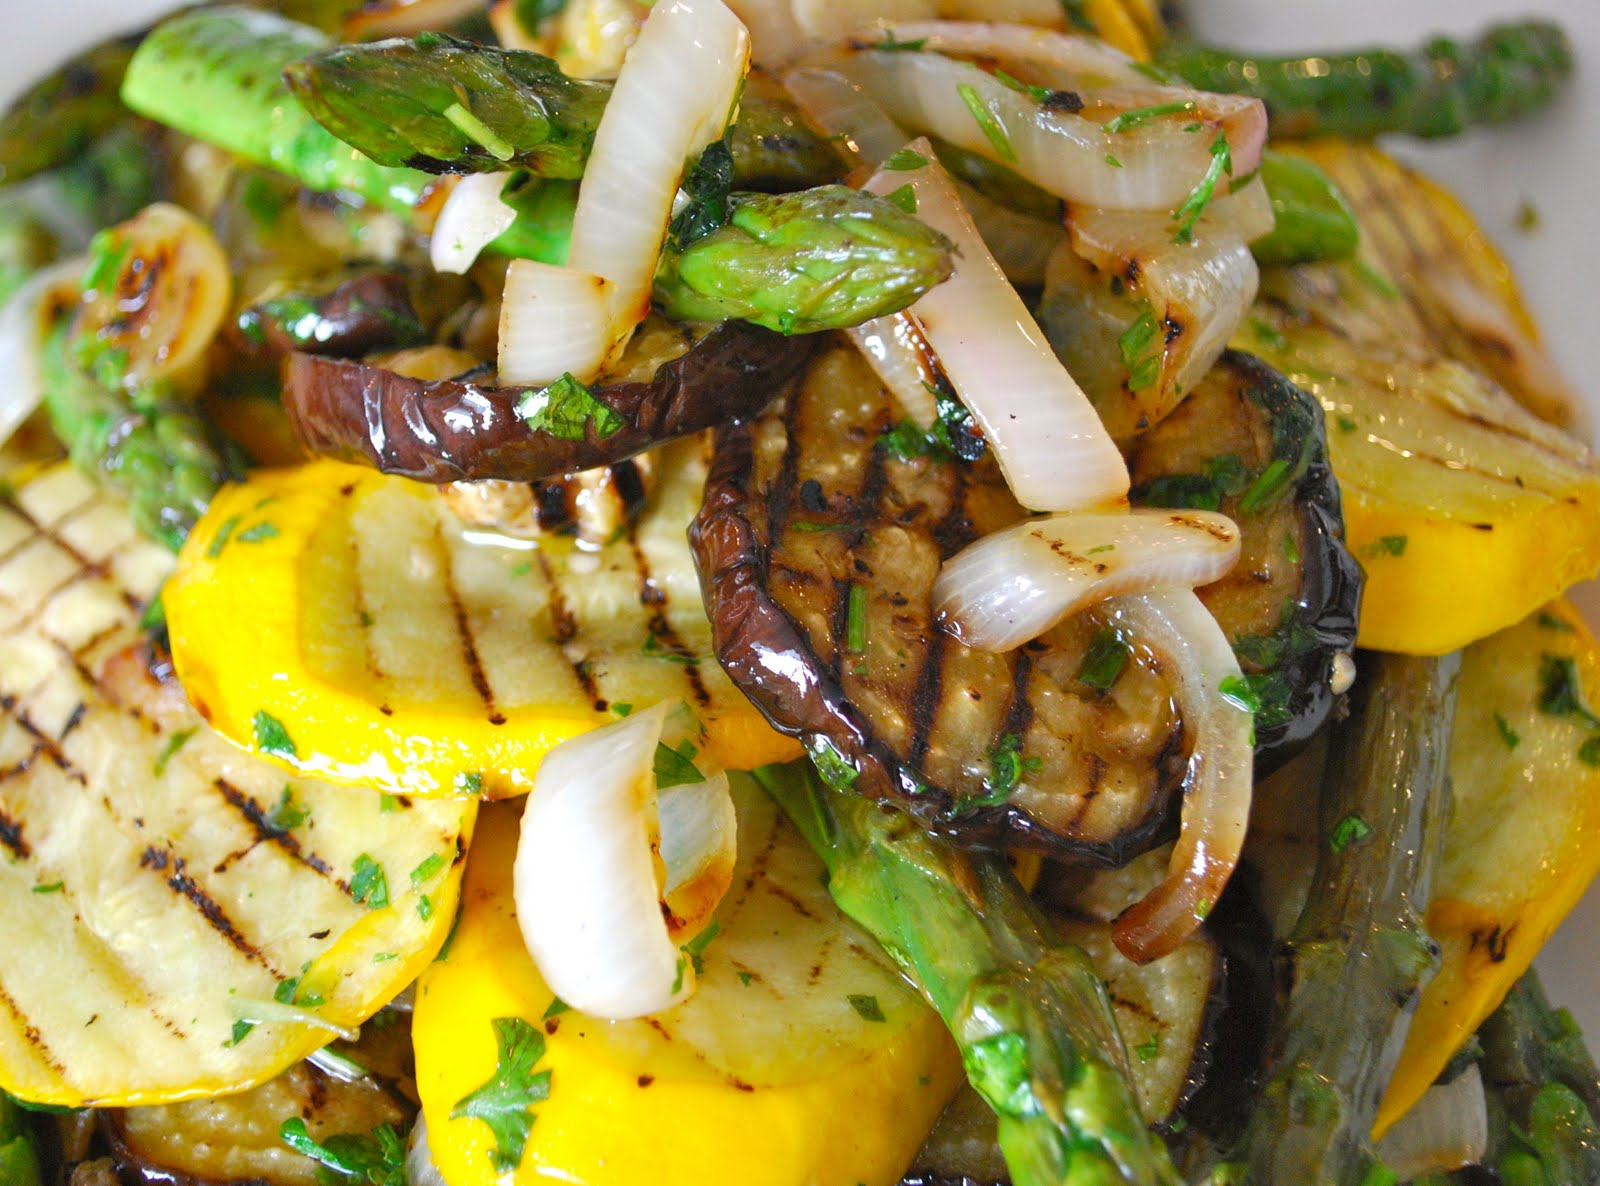 Bert Bakering: Grilled vegetable salad